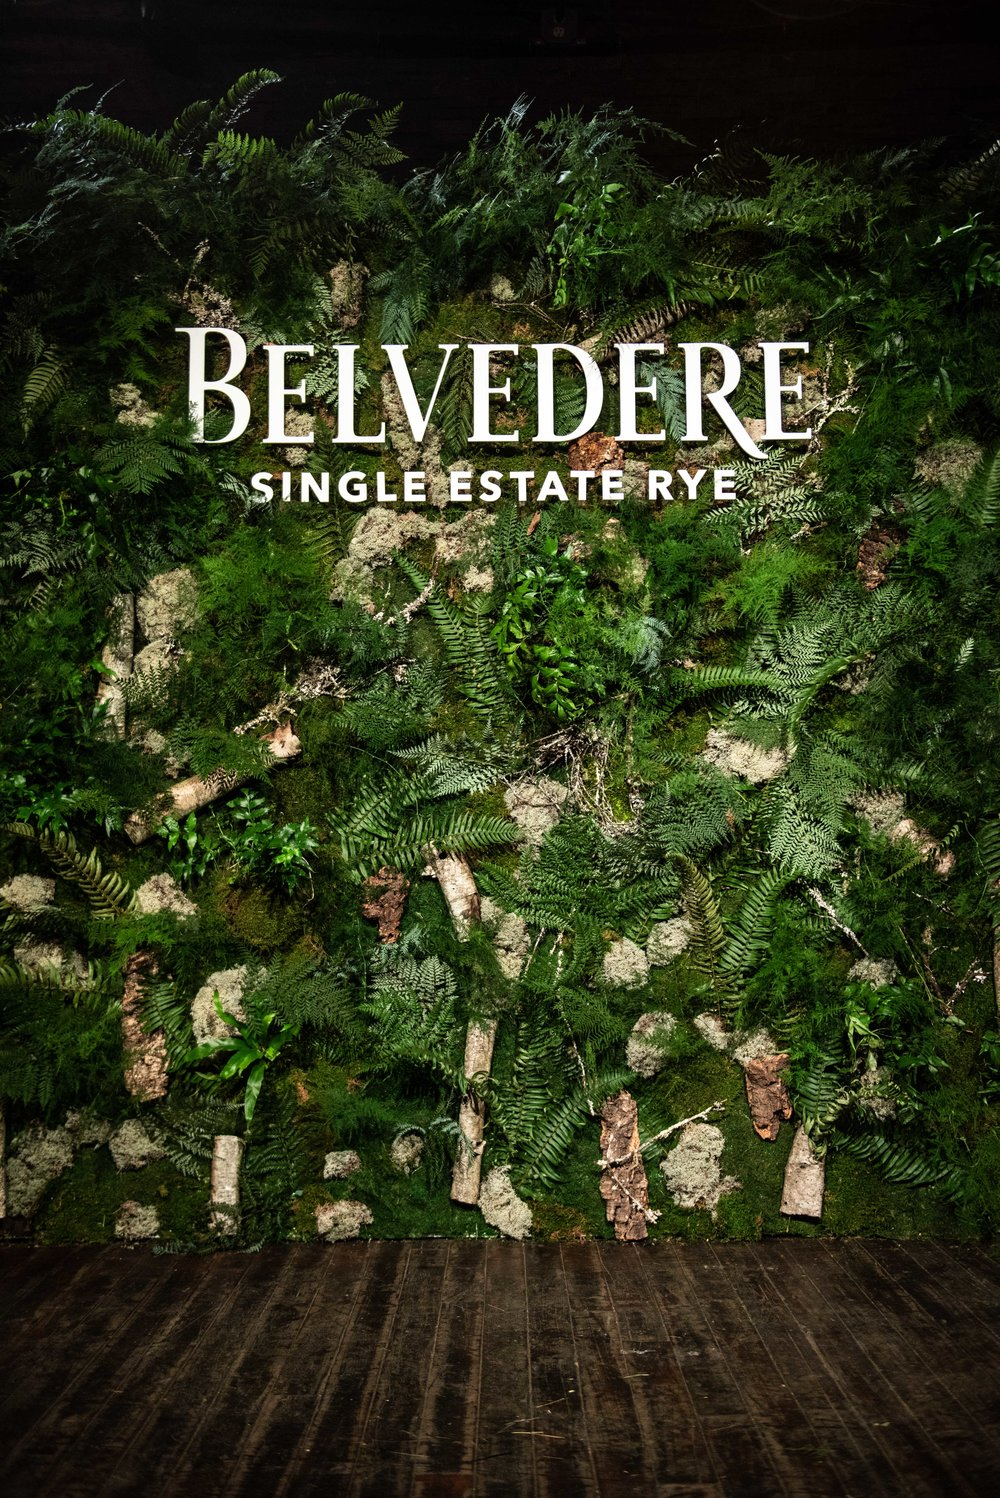 Belvedere Vodka Single Estate Rye Wall- B Floral